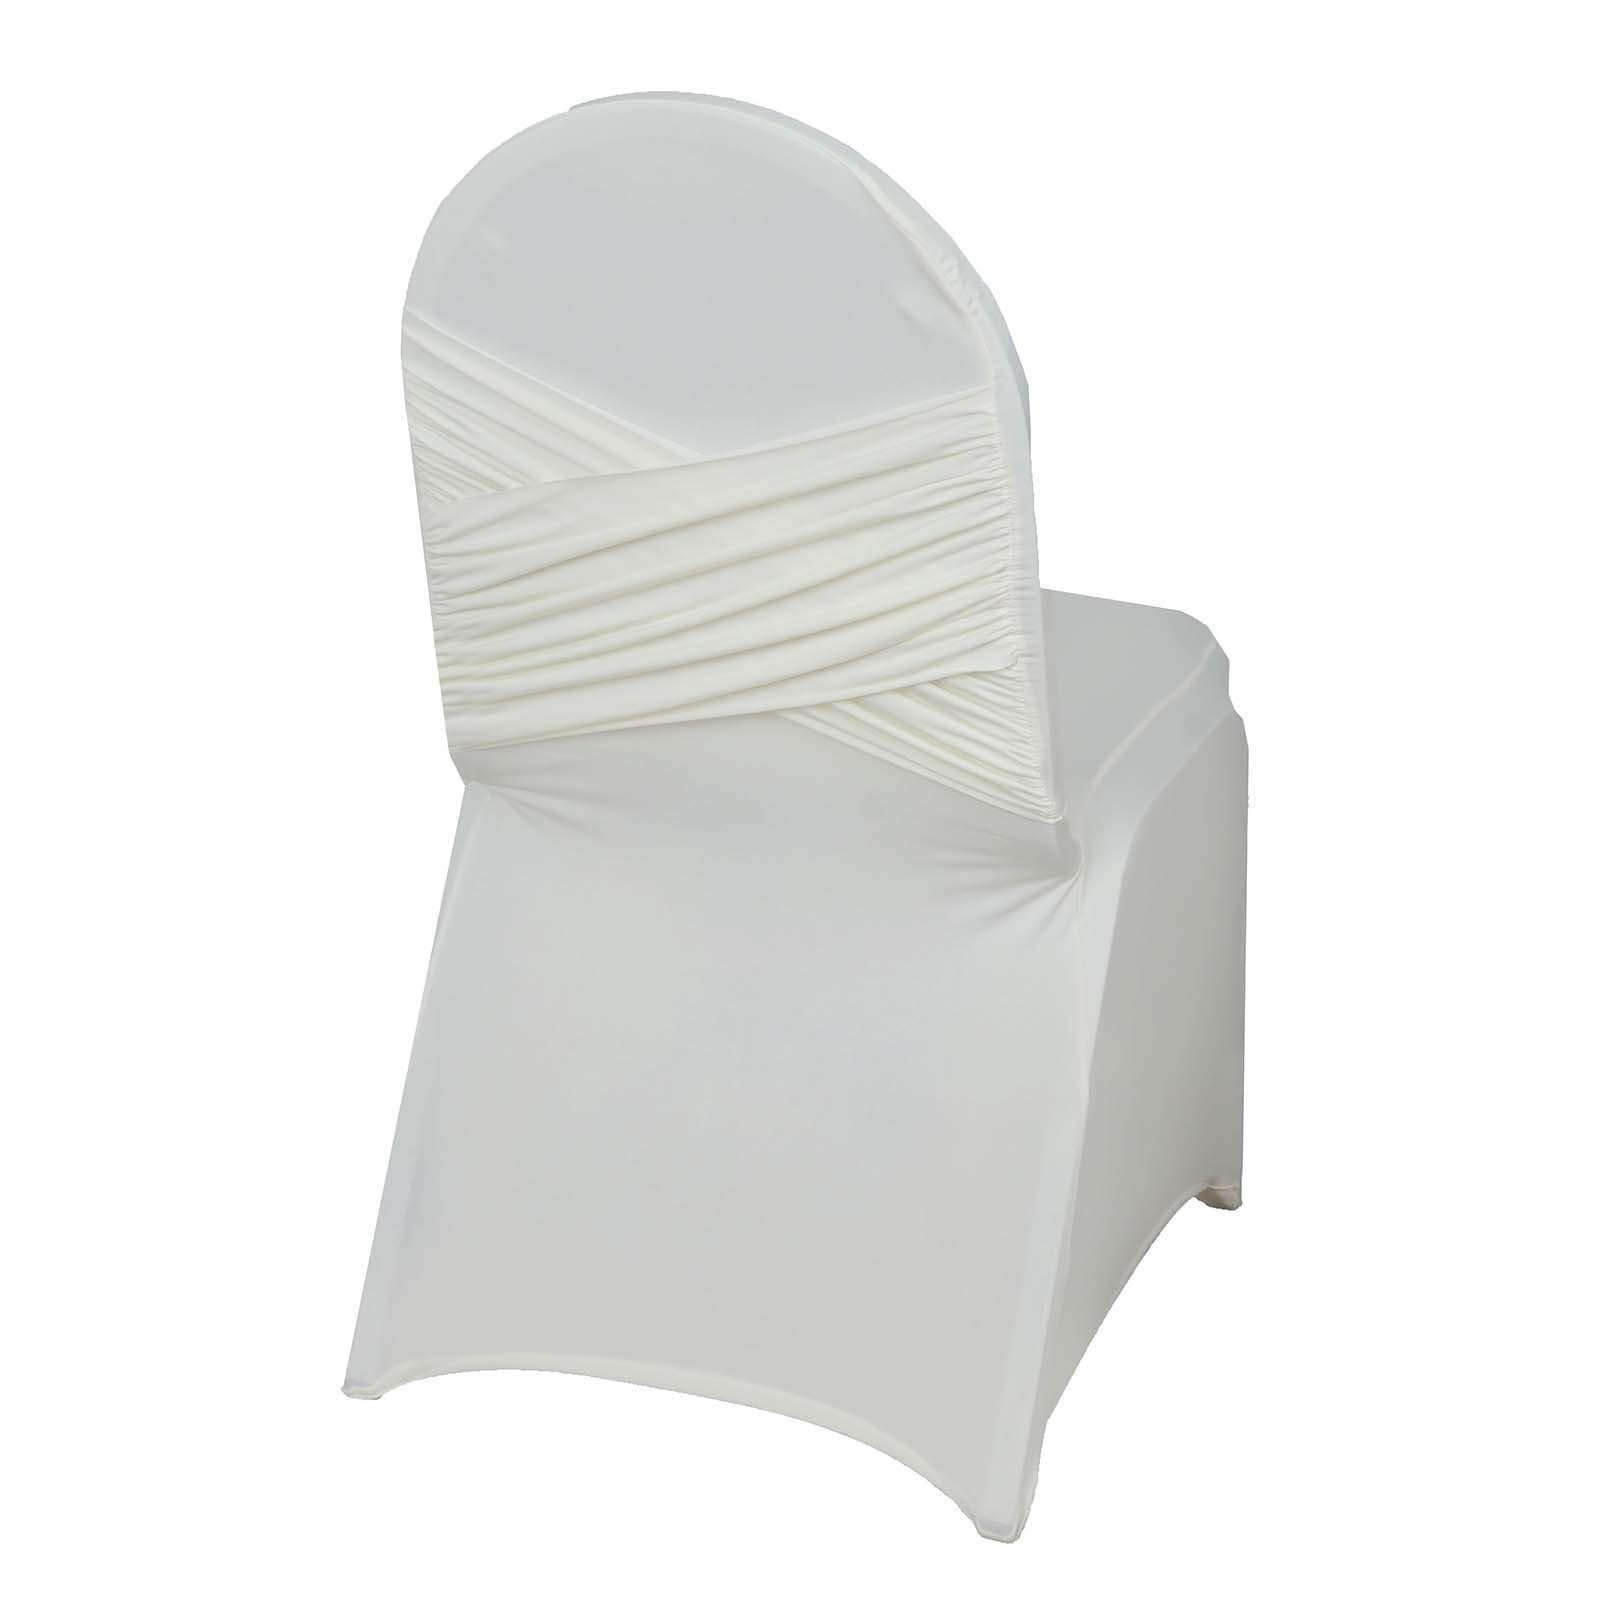 Super Premium Ivory Madrid Spandex Banquet Chair Covers For Wedding Restaurant Events Camellatalisay Diy Chair Ideas Camellatalisaycom